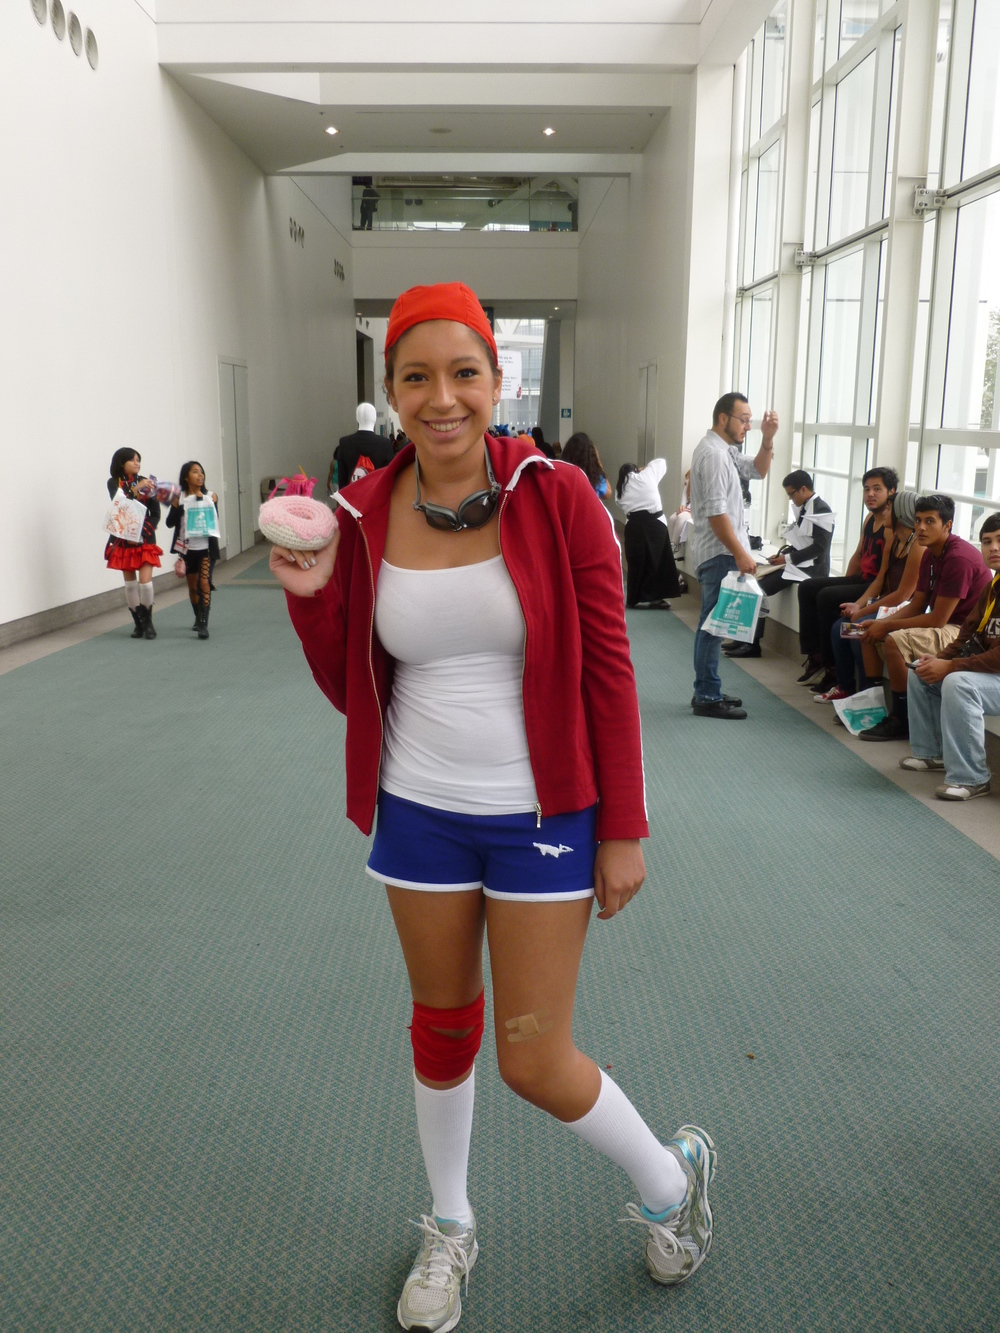 A Danganronpa cosplayer (ironically enough, the first game was announced by NIS America at AX).JPG